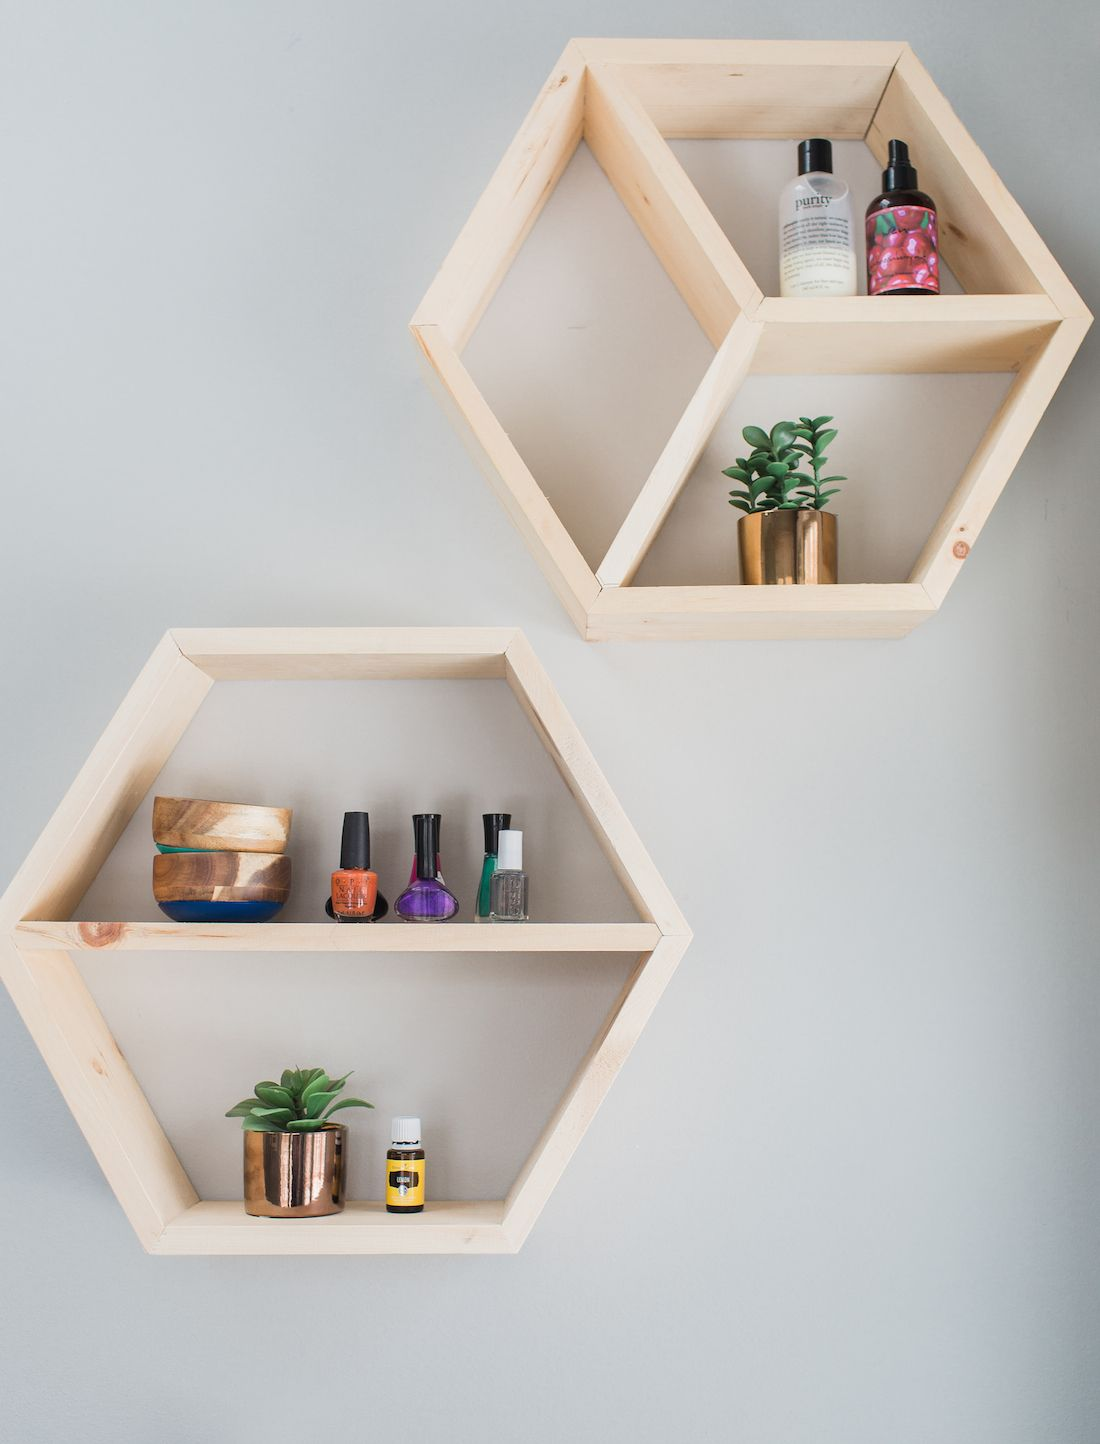 East Coast Creative and team used scrap wood to build geometric ...